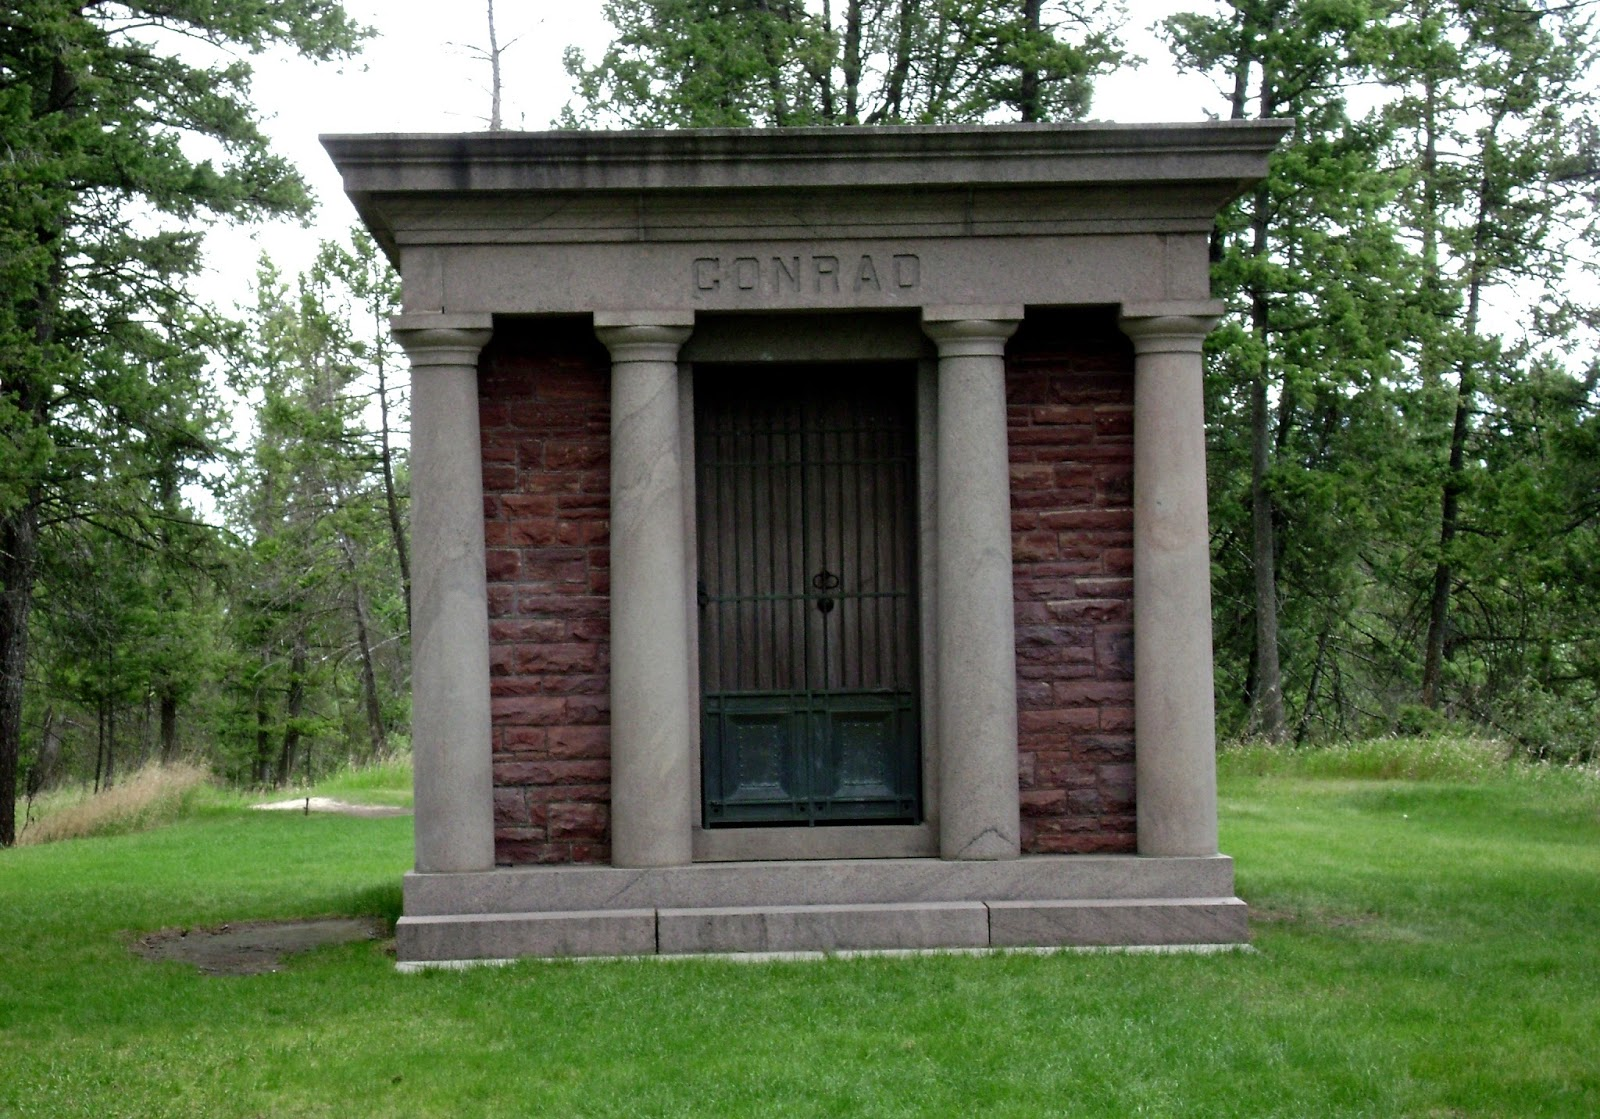 Although our bus couldn't navigate through Conrad Cemetery, we were lucky to drive in part way and hear from Montana Historical Society Interpretive Historian, Ellen Baumler about Charles Conrad's last resting place — a beautiful, lush, and expansive designed landscape on the east side of Kalispell along the Flathead River.